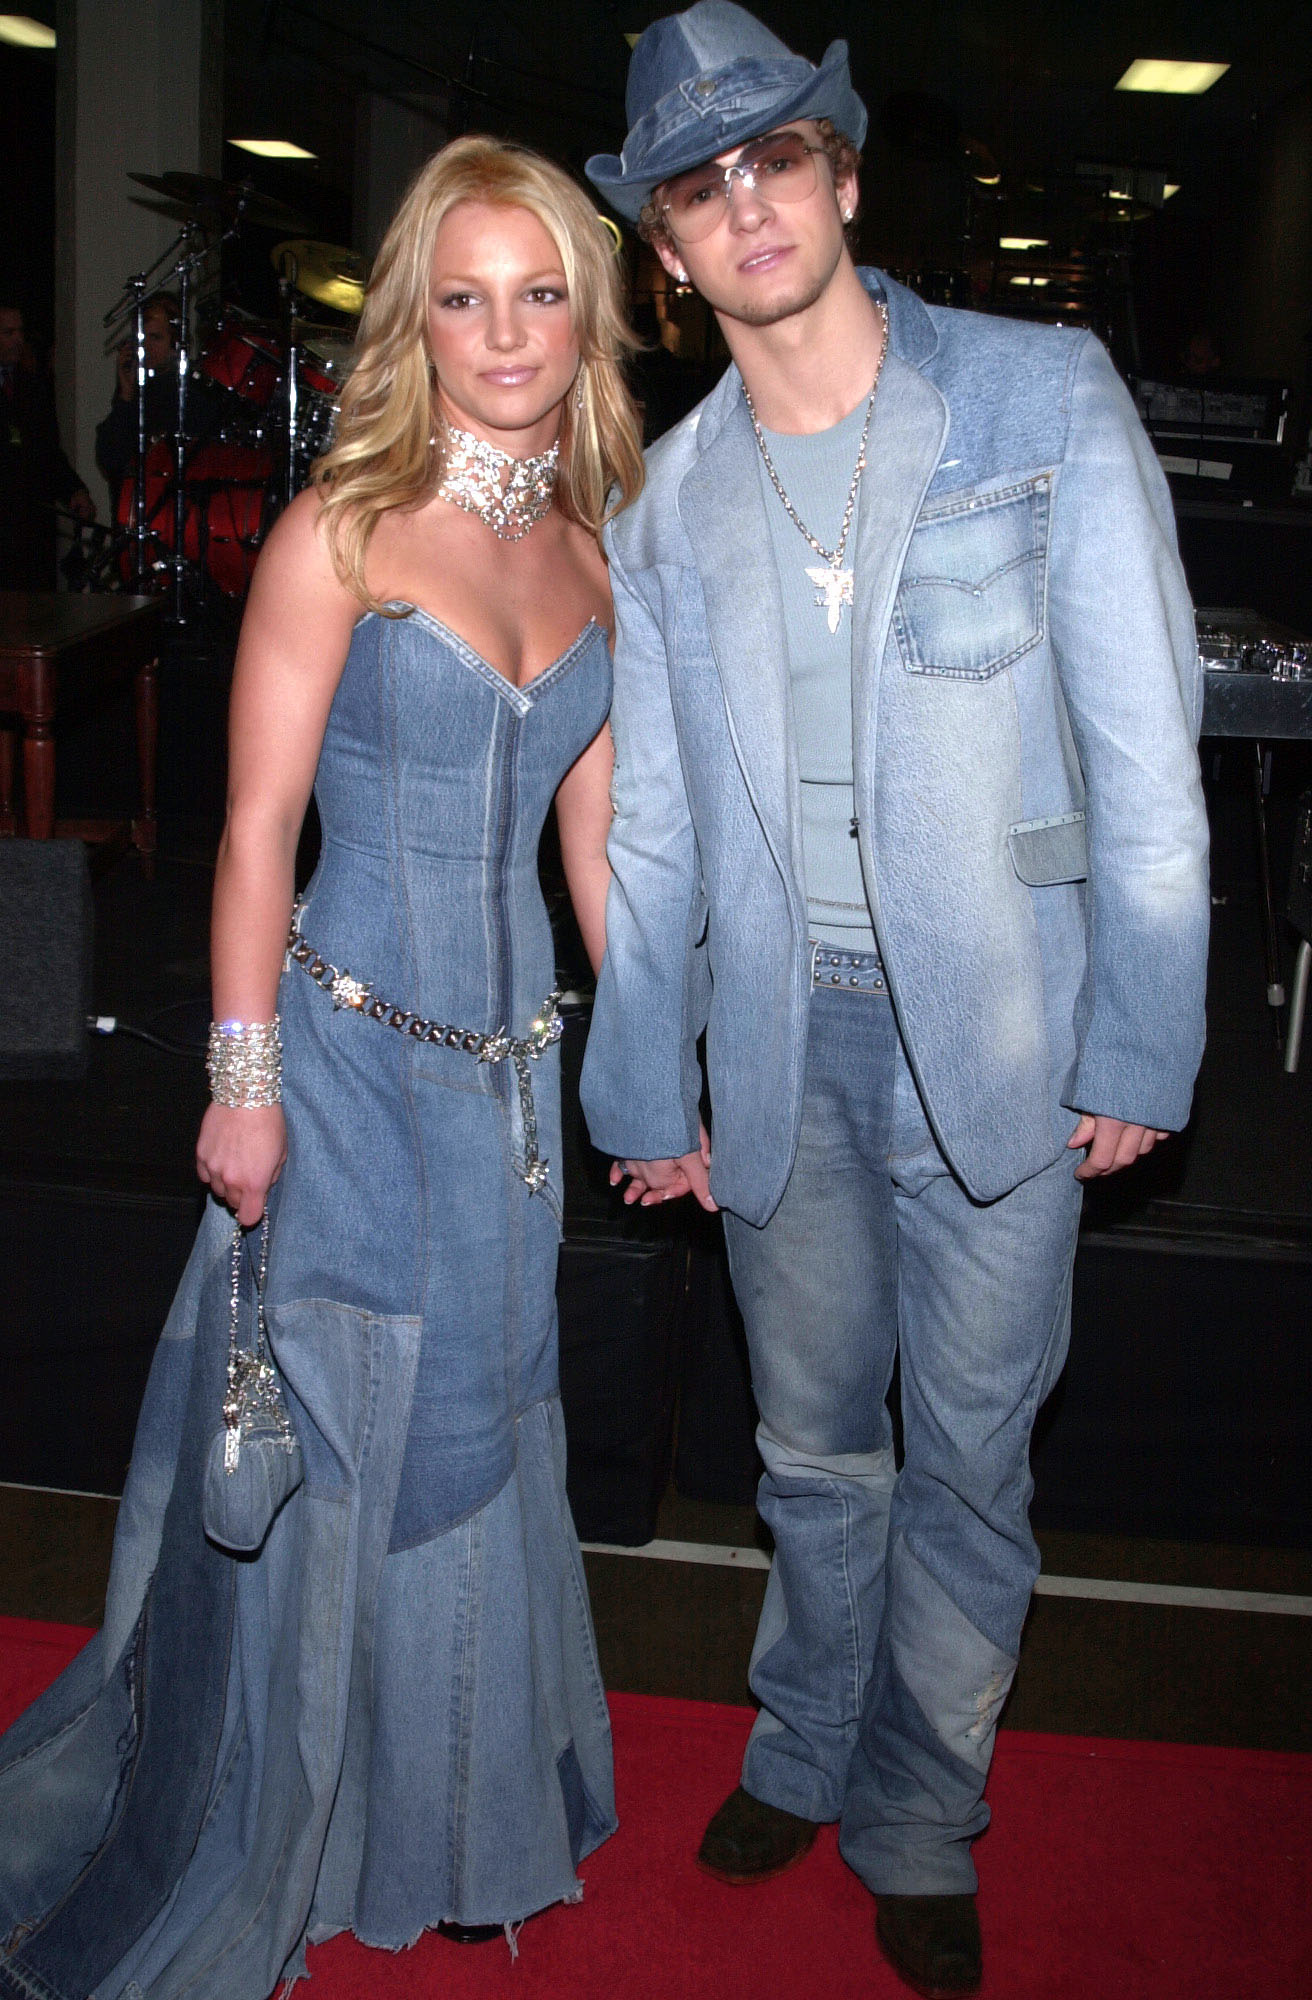 Britney Spears and Justin Timberlake attend the 28th Annual American Music Awards at the Shrine Auditorium in Los Angeles on Jan. 8, 2001.